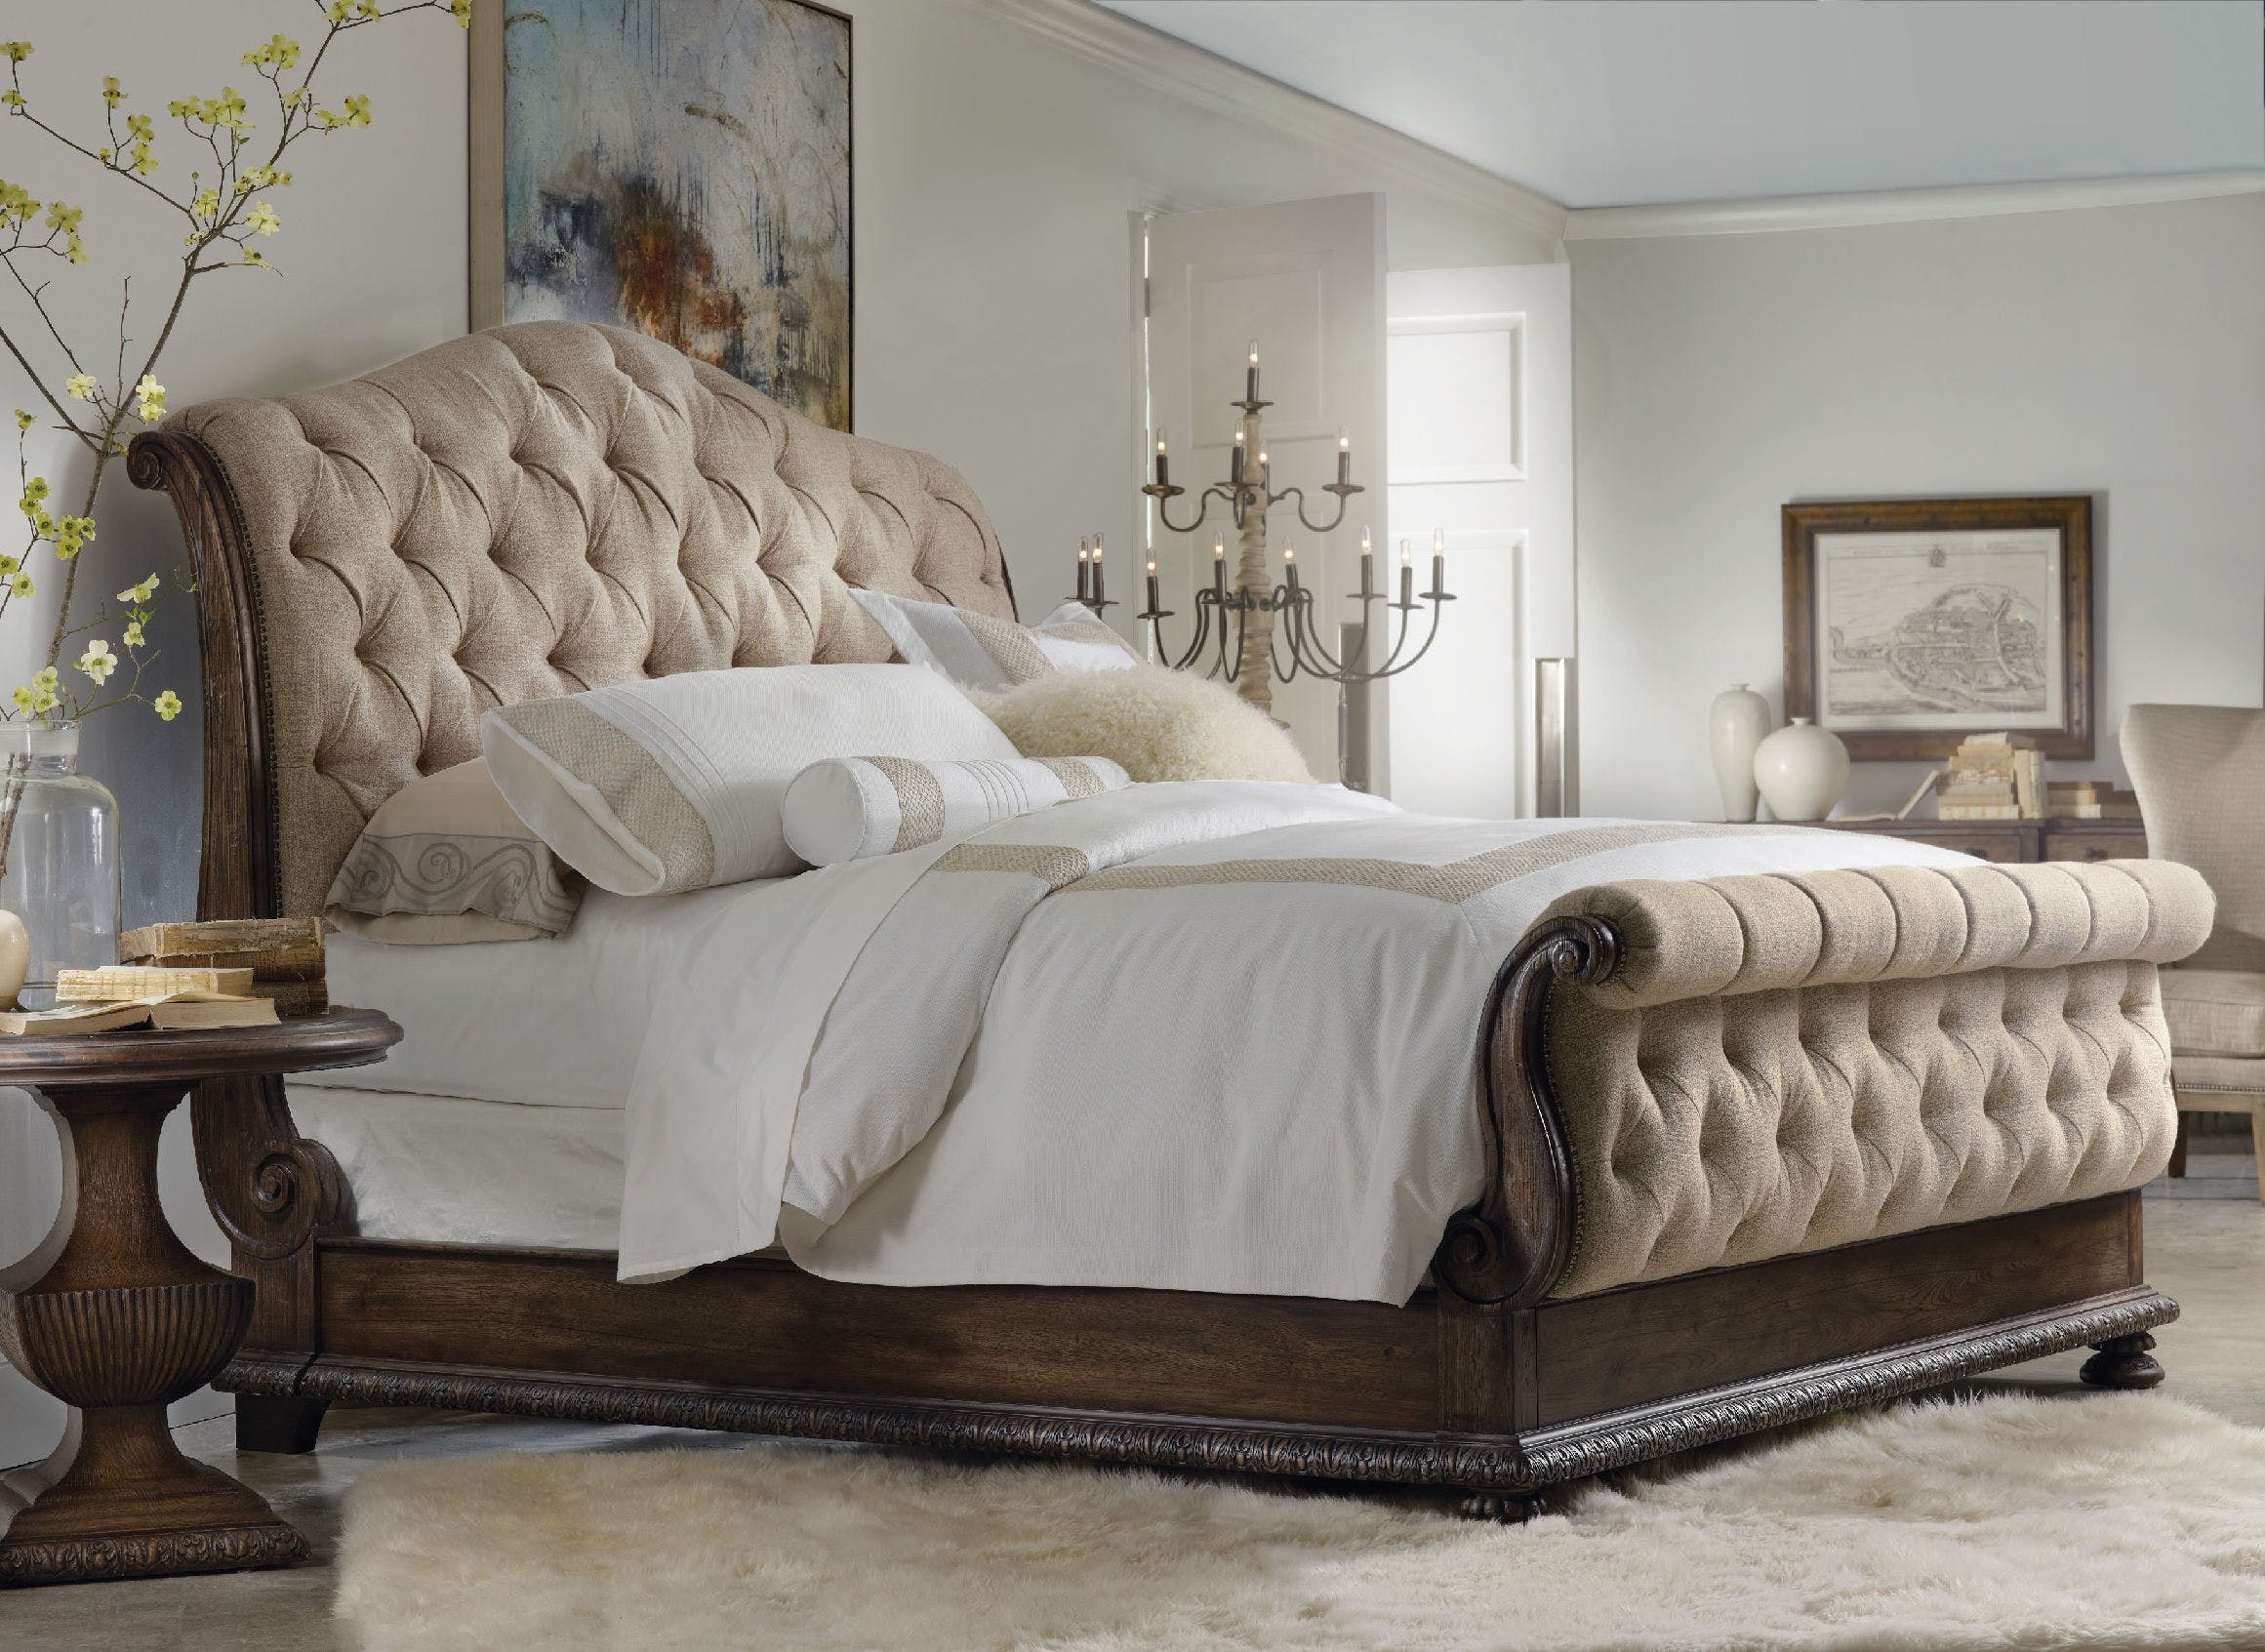 Luxury Tufted Bed Frame Gallery